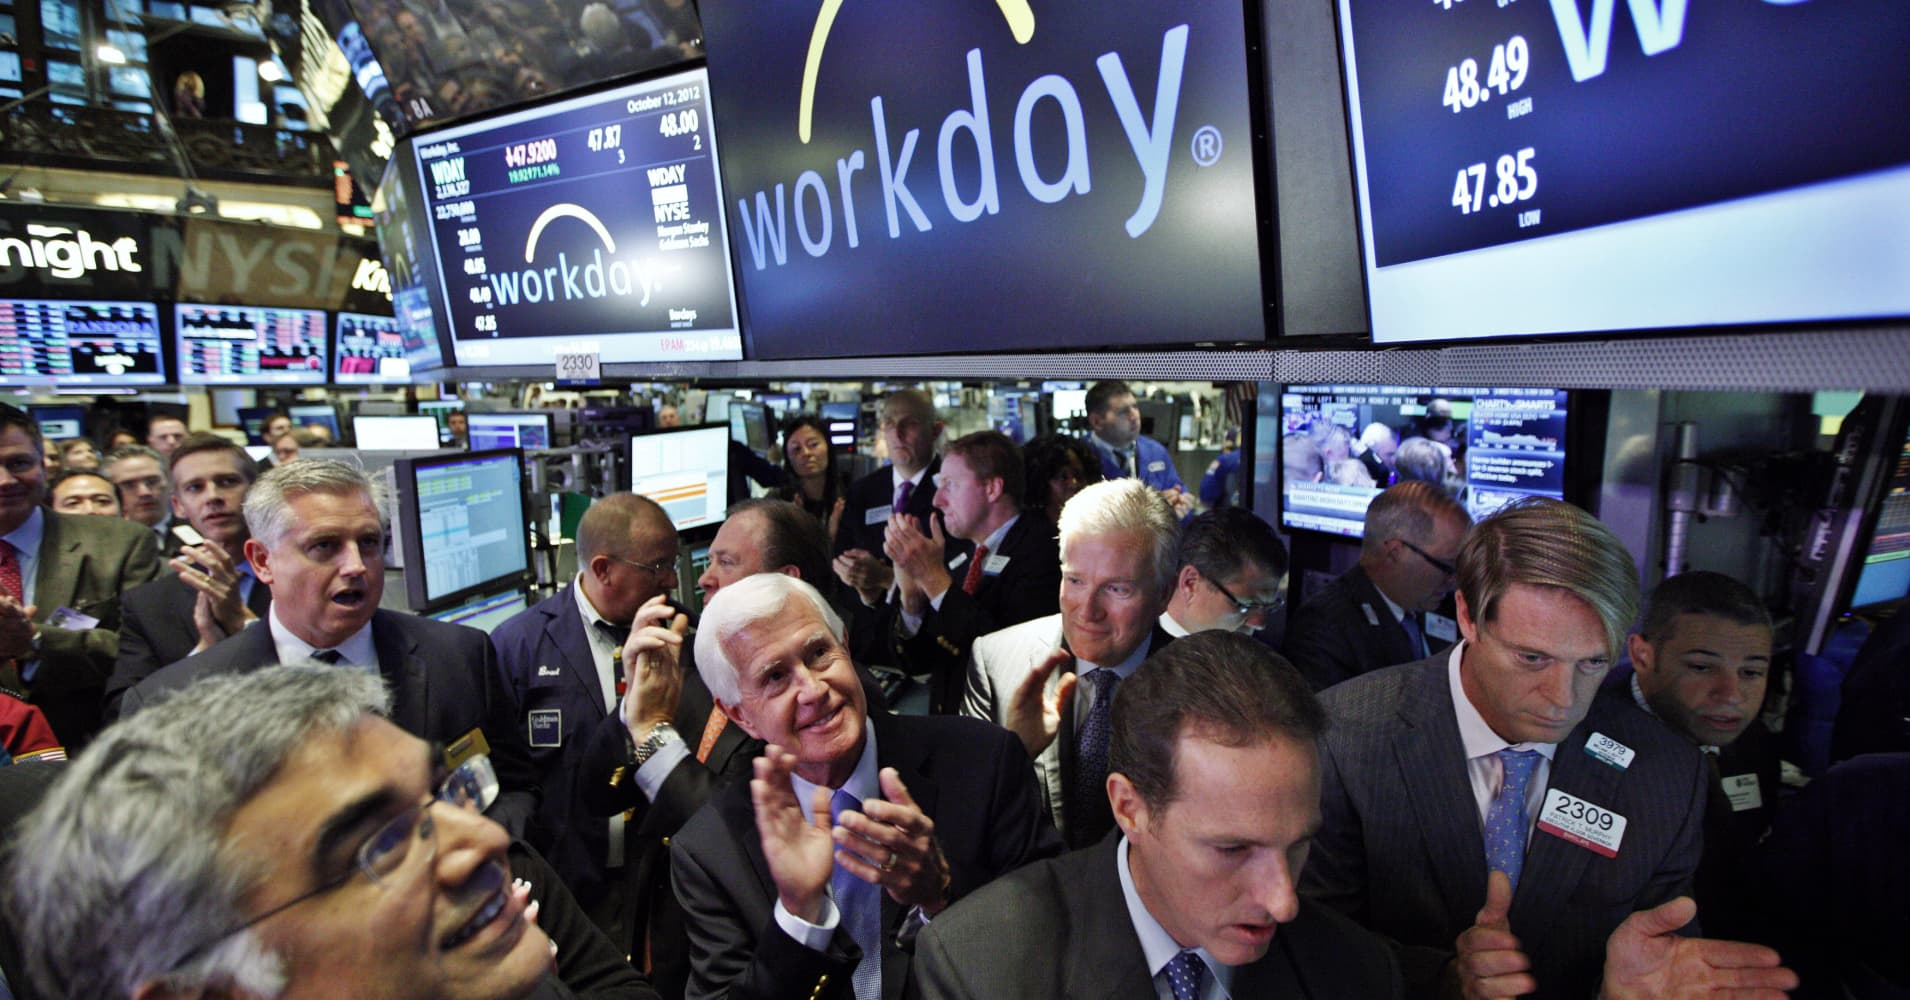 Workday: From venture darling to venture investor